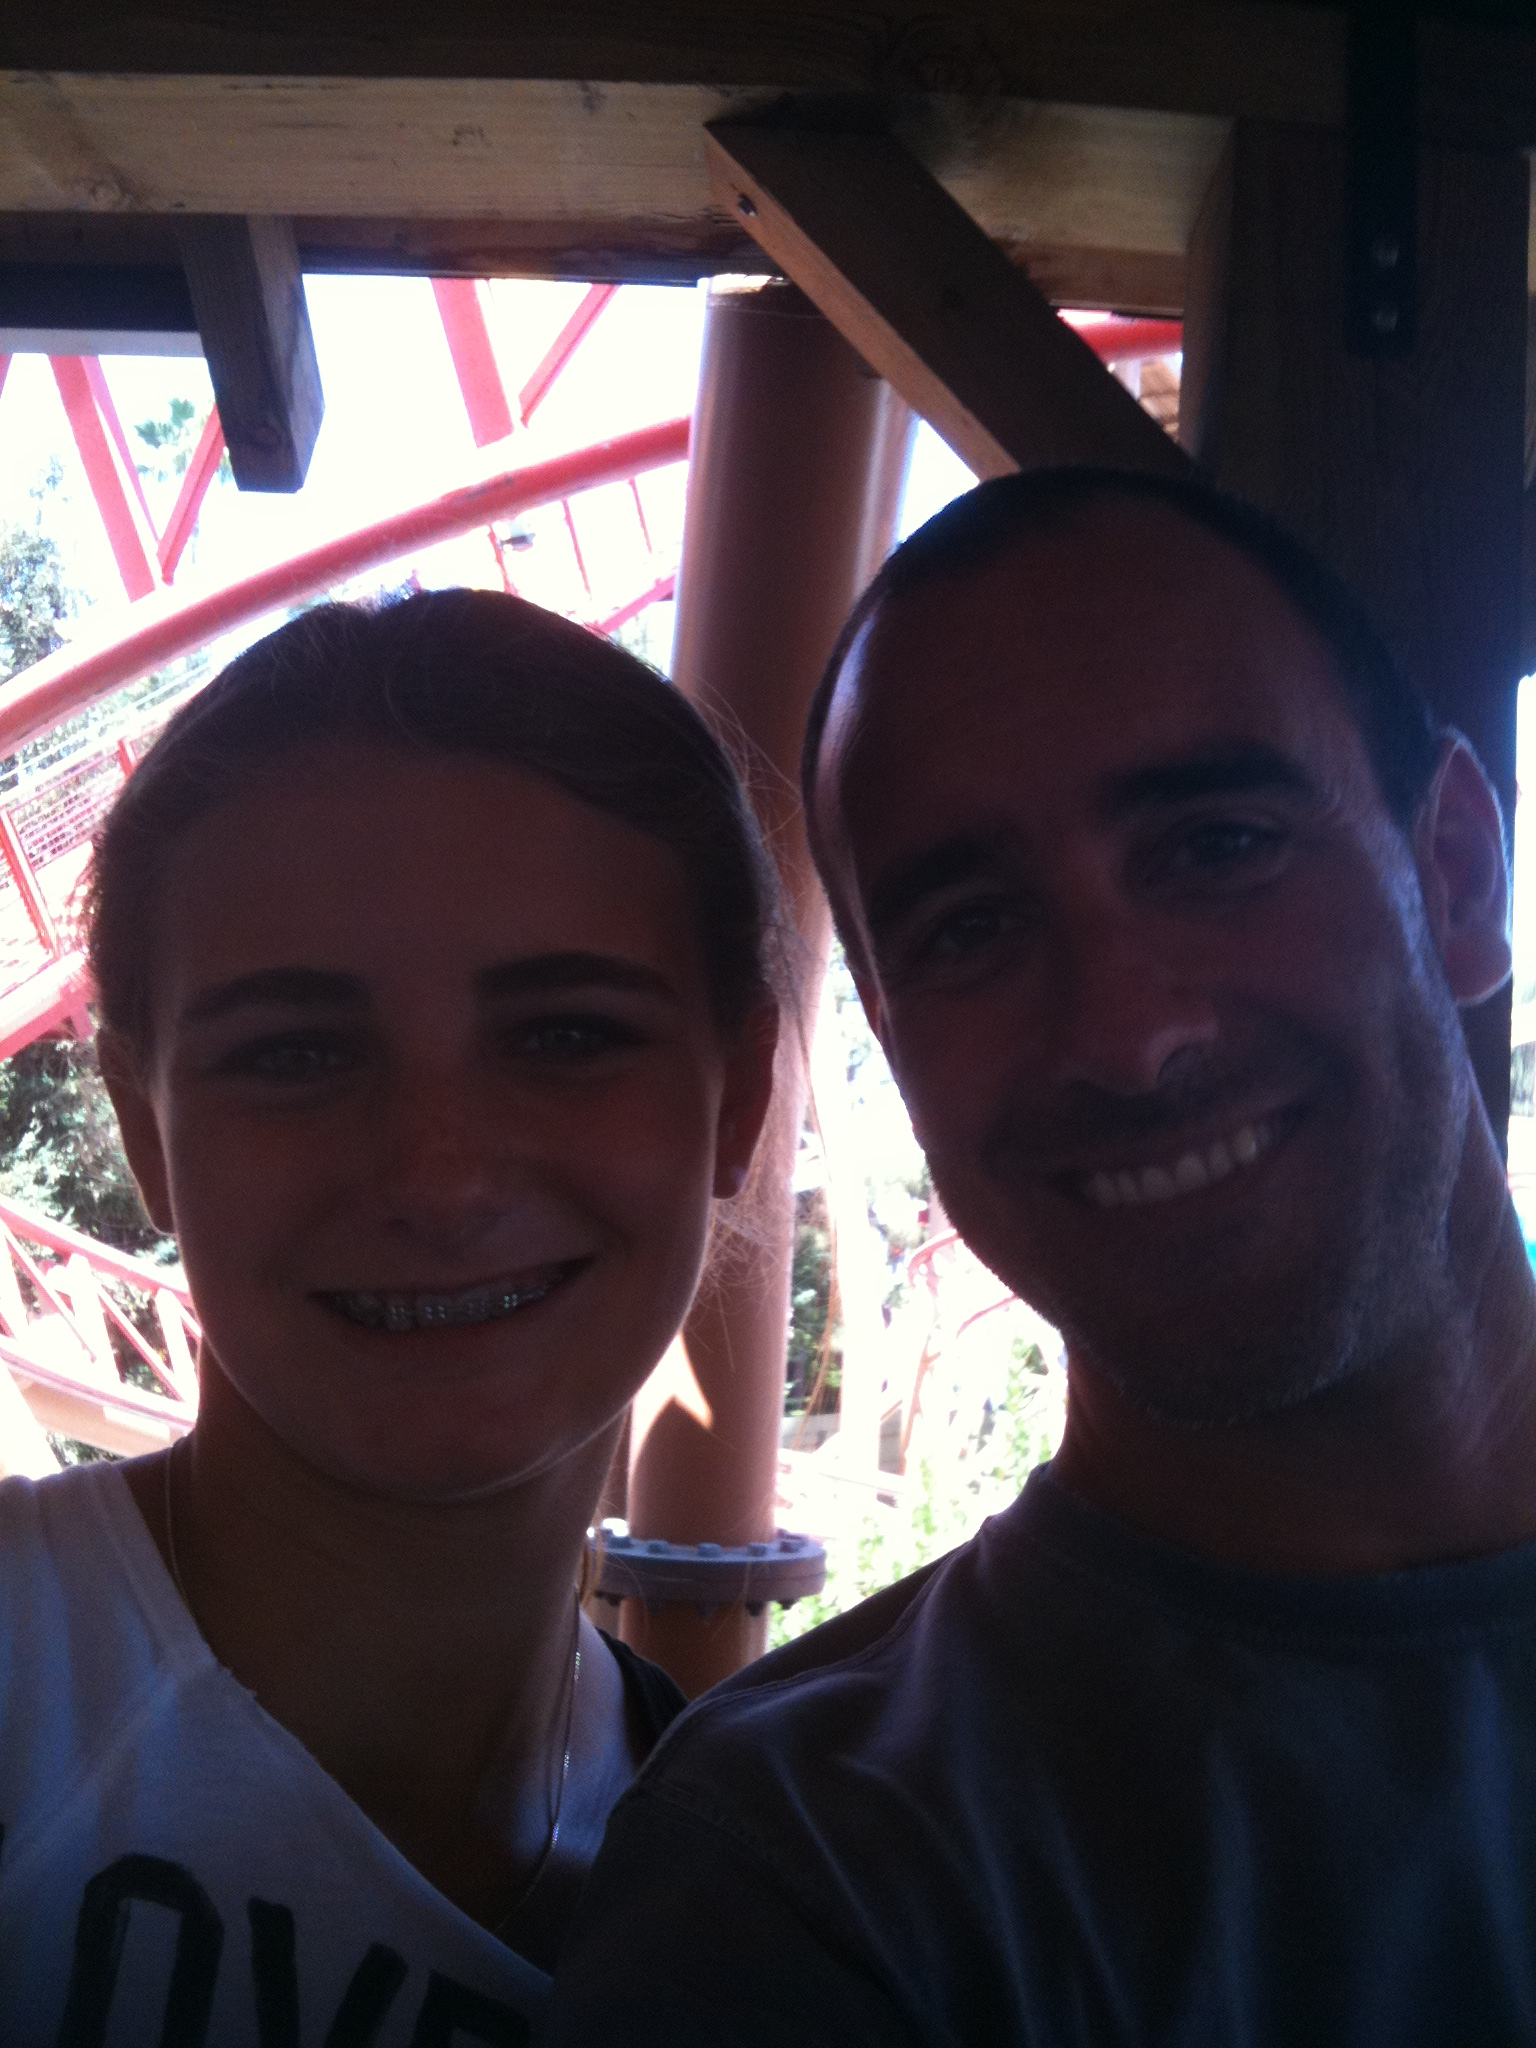 My daughter Julia and me at Knott's Berry Farm 2010